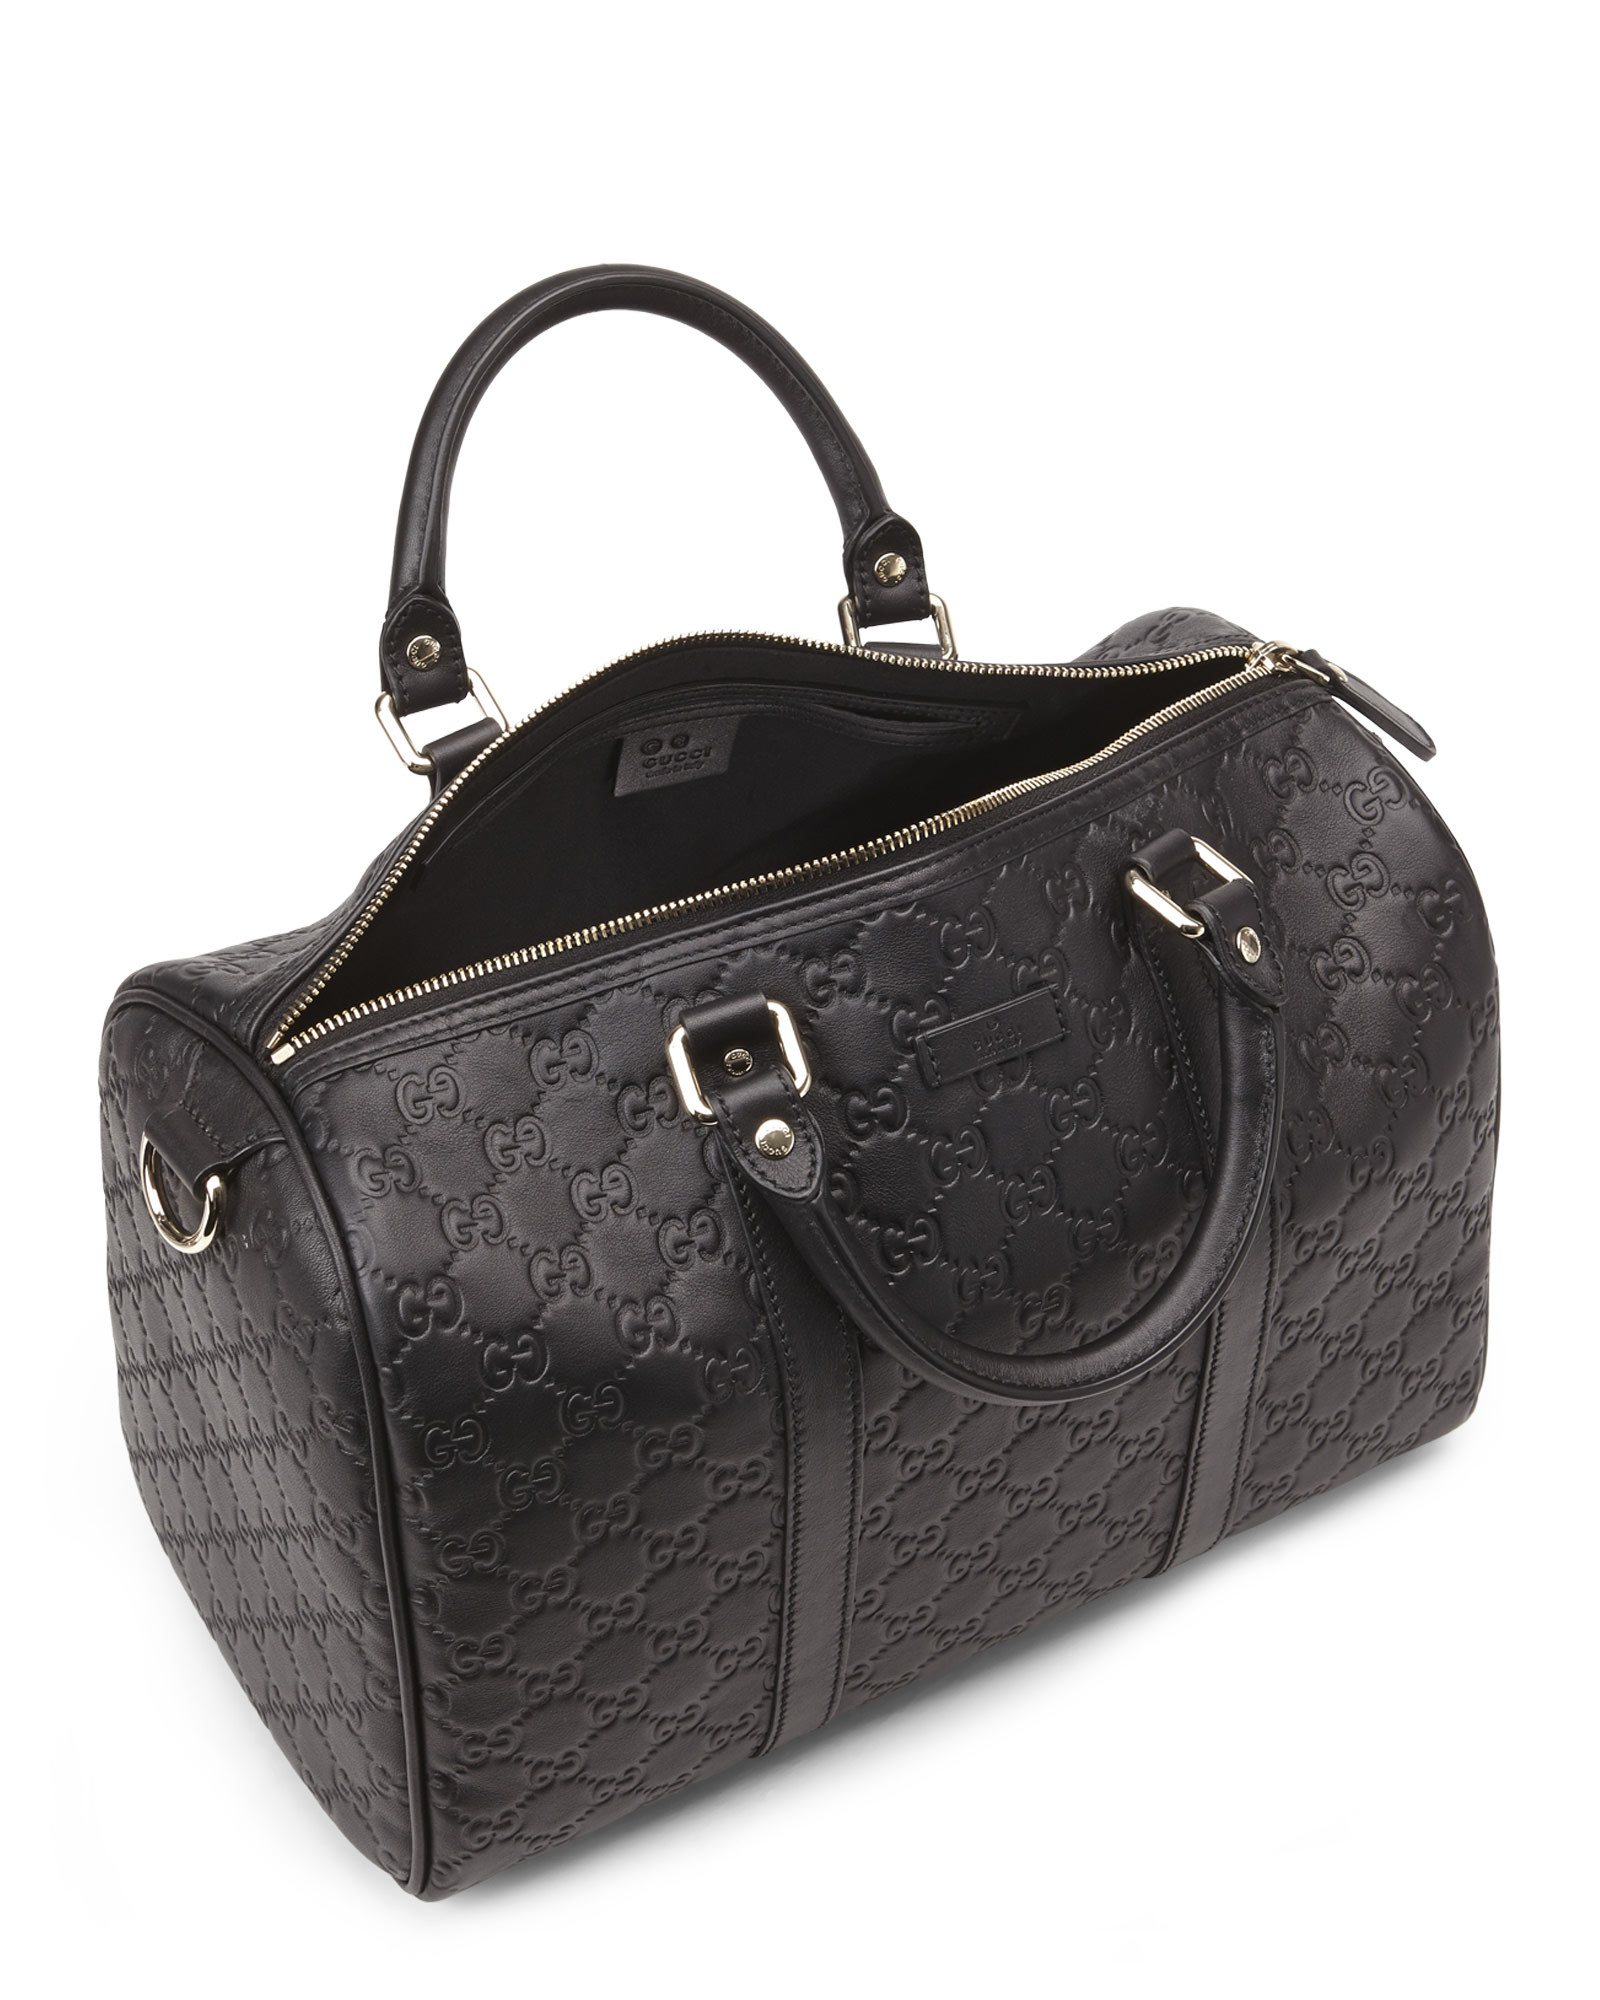 0636e44da54c2d Gucci Joy Boston Bag Black | Stanford Center for Opportunity Policy ...